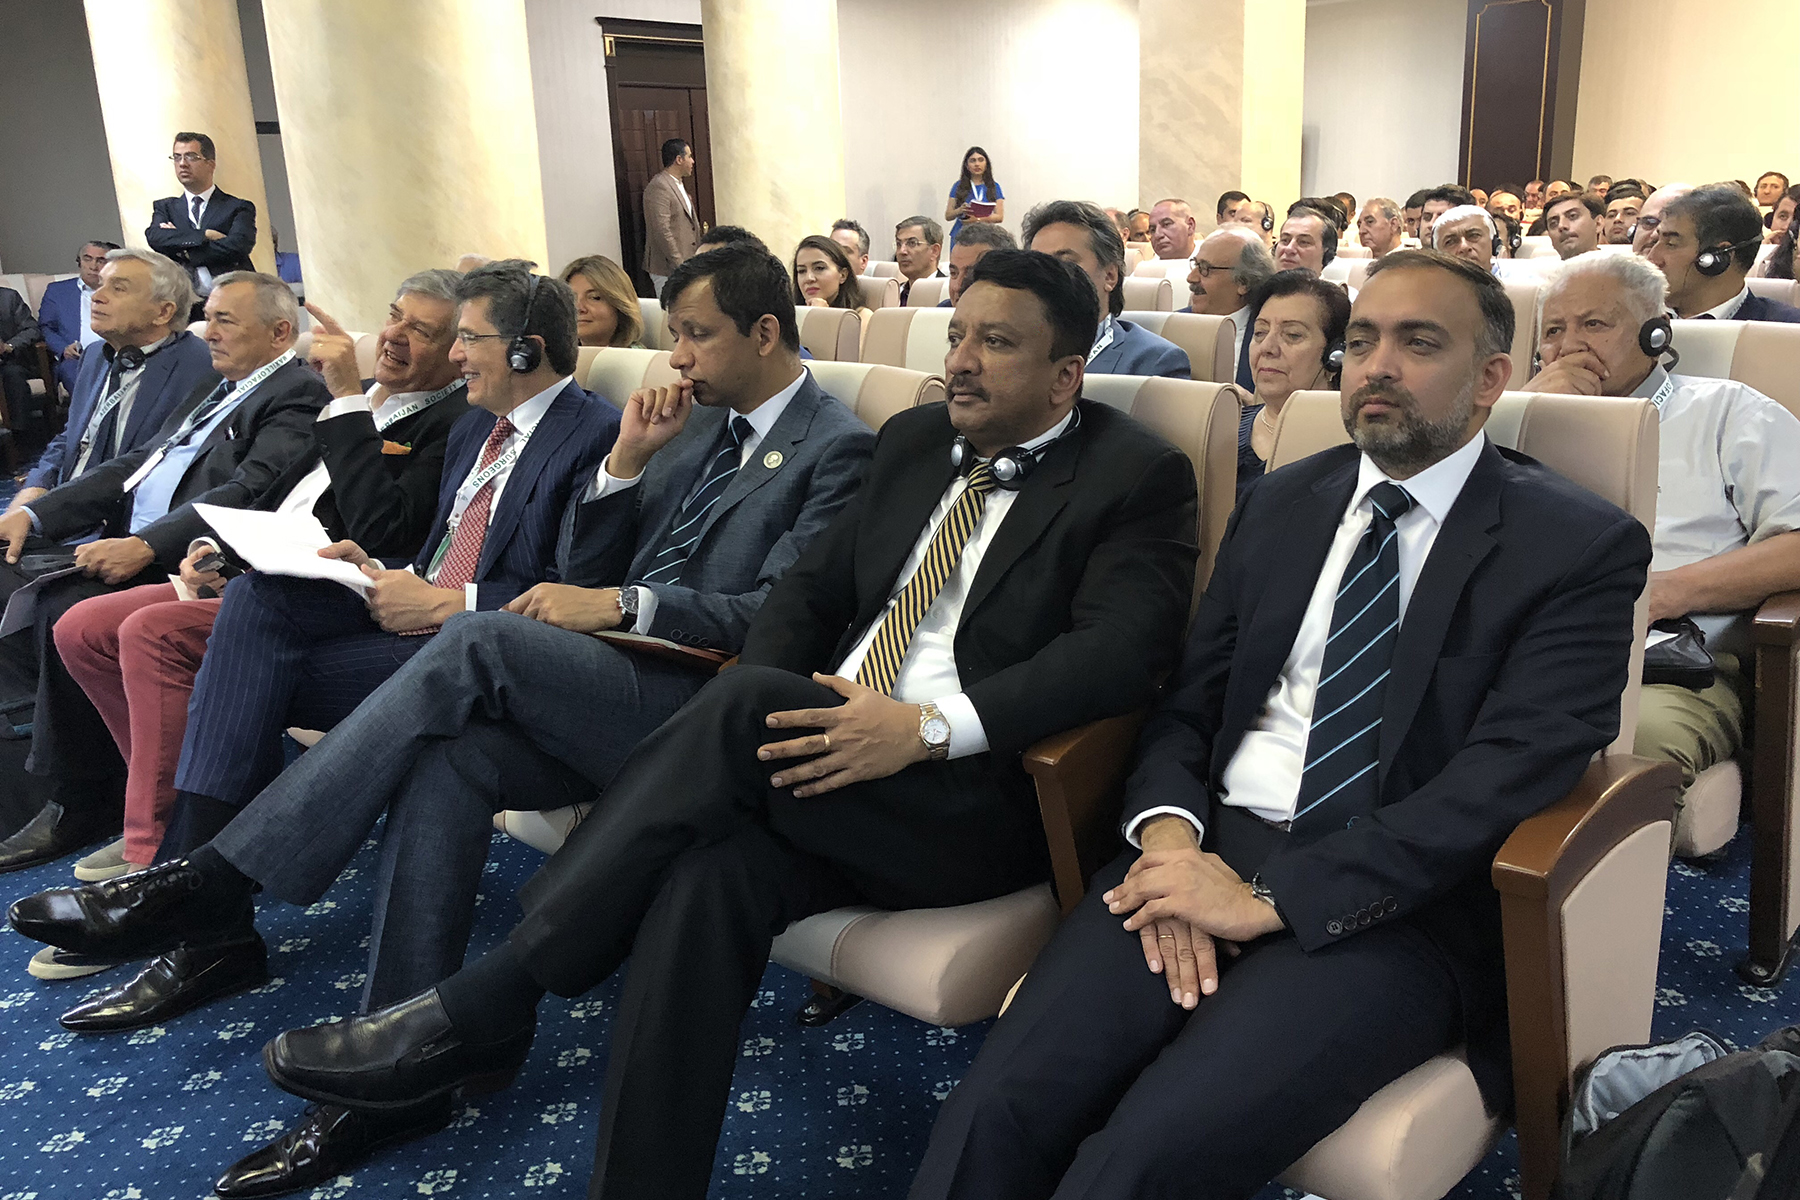 Dr SM Balaji seated with the audience after his ICPF presentation at Azerbaijan Society of Oral and Maxillofacial Surgeons (AzSOMS) presentation ceremony